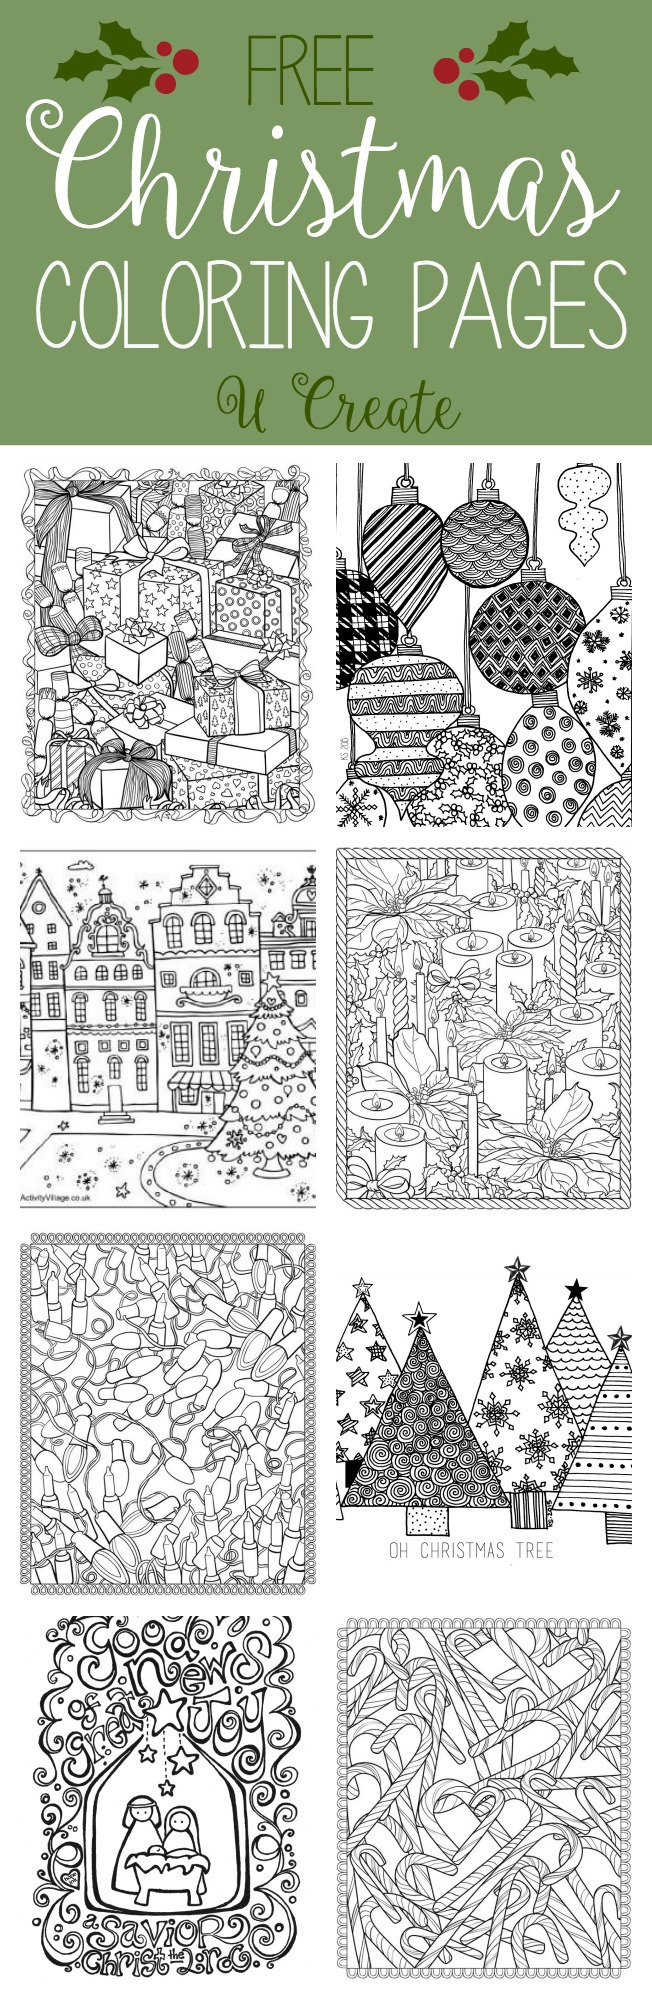 Free Coloring Pages To Print For Christmas. Free Christmas Adult Coloring Pages  U Create